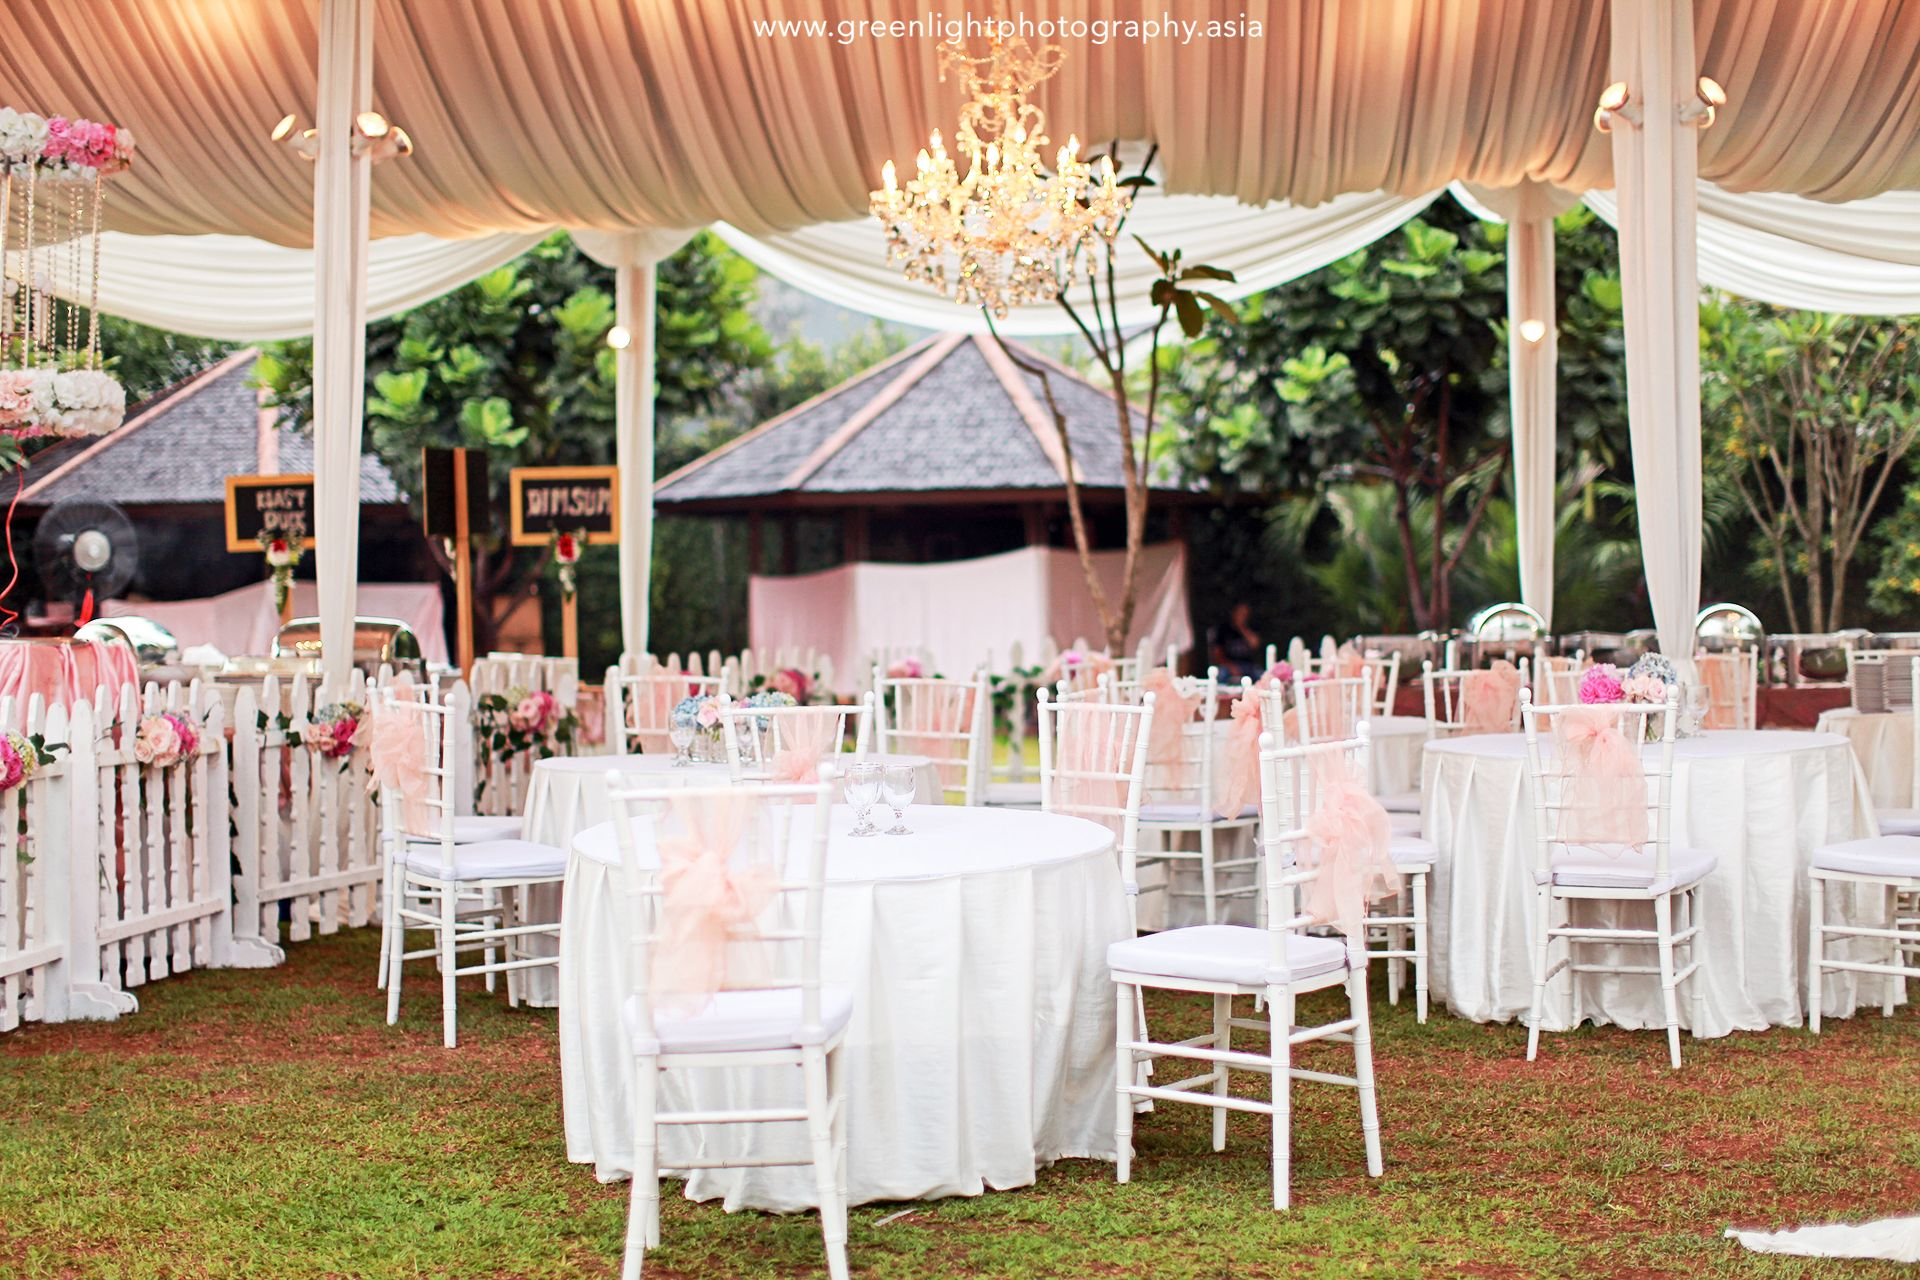 Secret garden wedding at pondok indah lestari outdoor wedding secret garden wedding at pondok indah lestari outdoor wedding pondok indah lestari thebridedept junglespirit Gallery